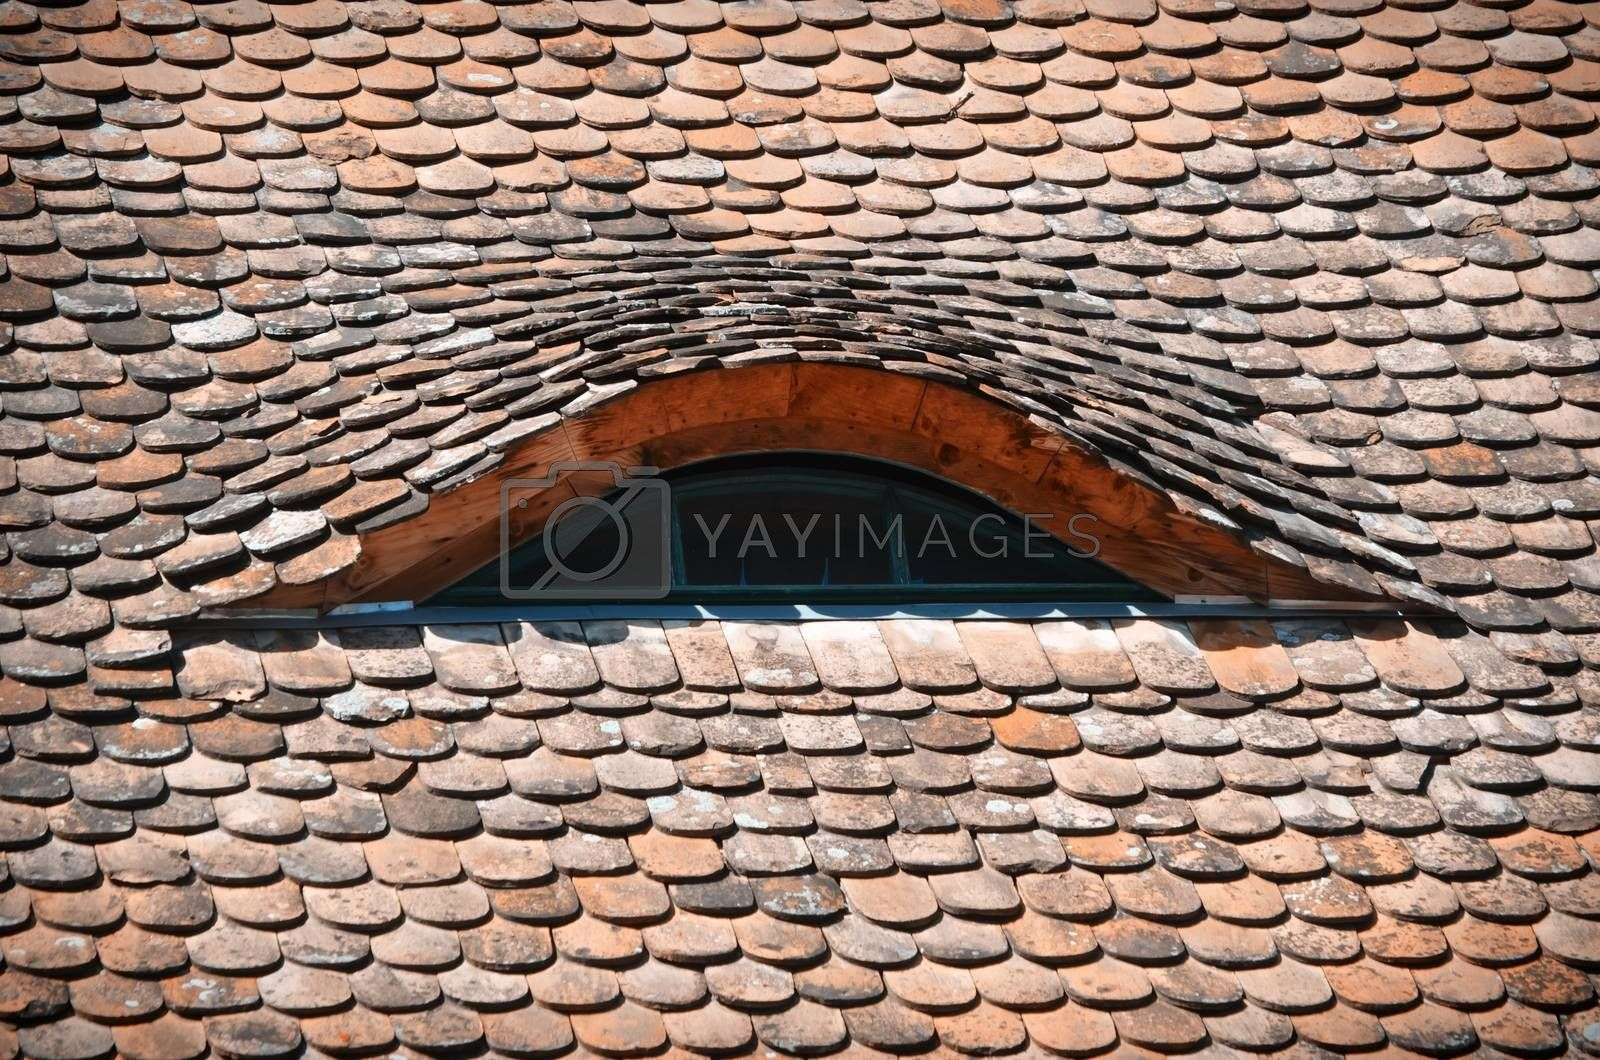 Stone Roof by razvodovska